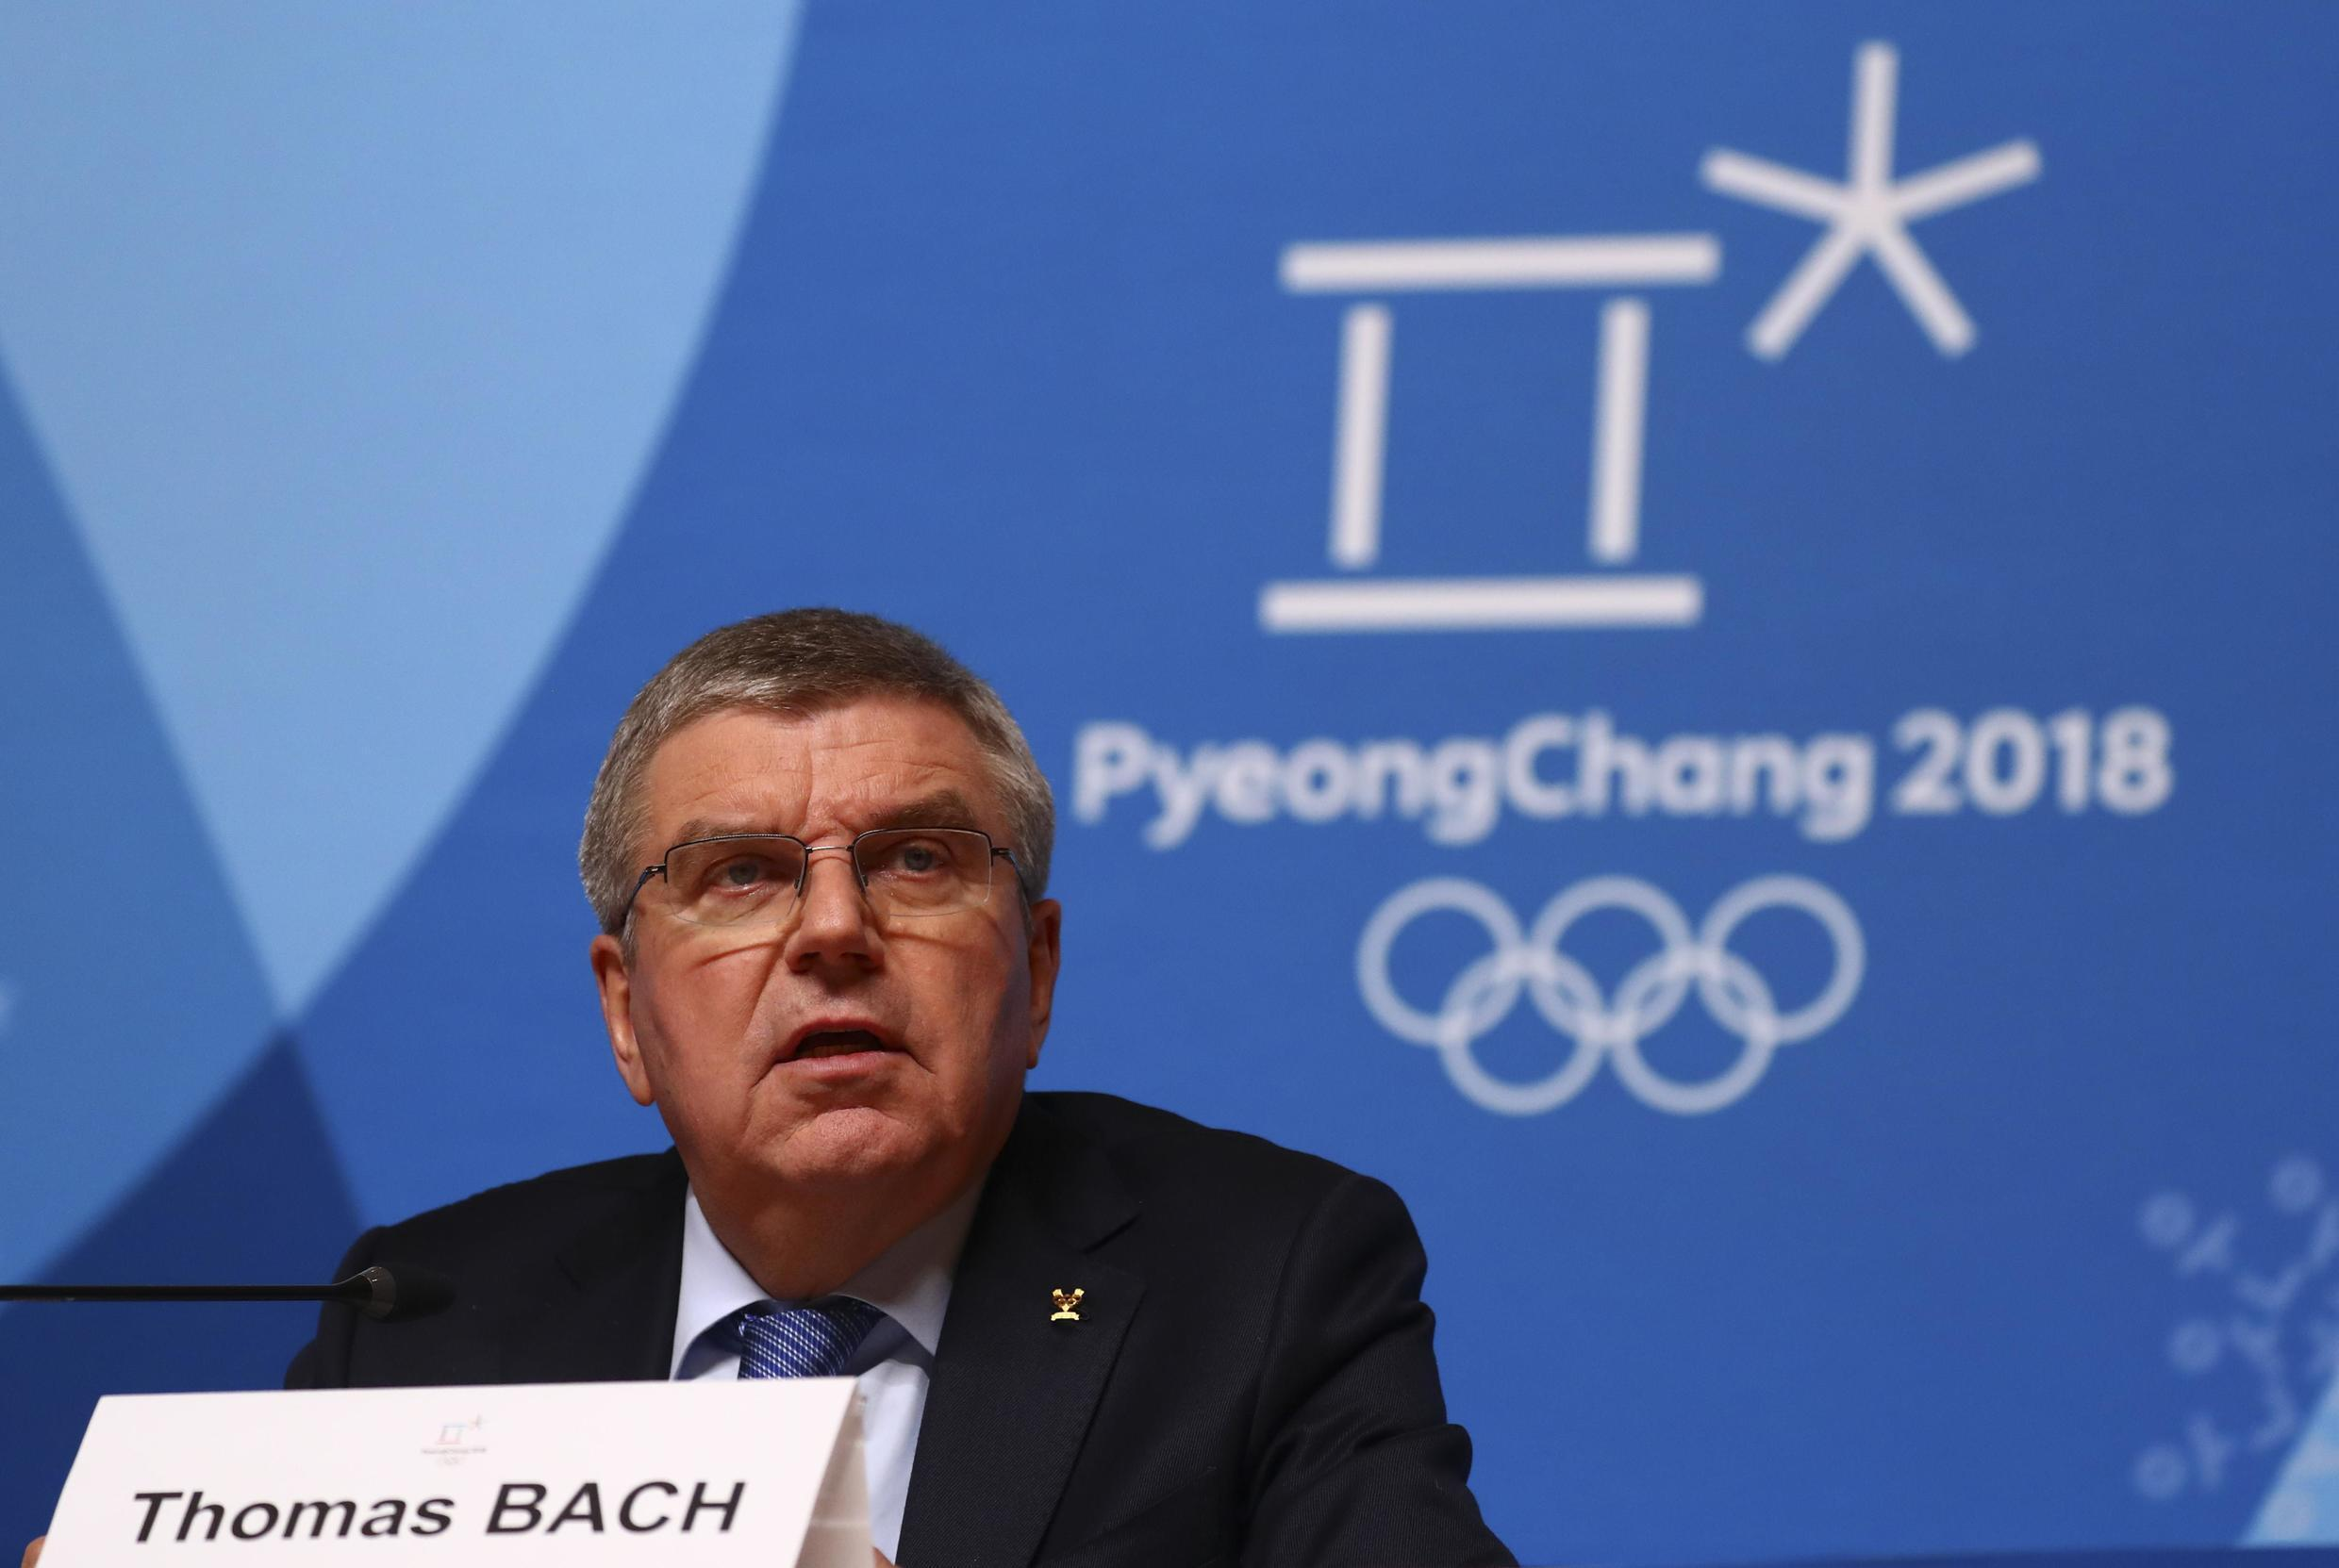 International Olympic Committee President Thomas Bach is with other members in Pyeongchang, South Korea, for this month's Winter Games.